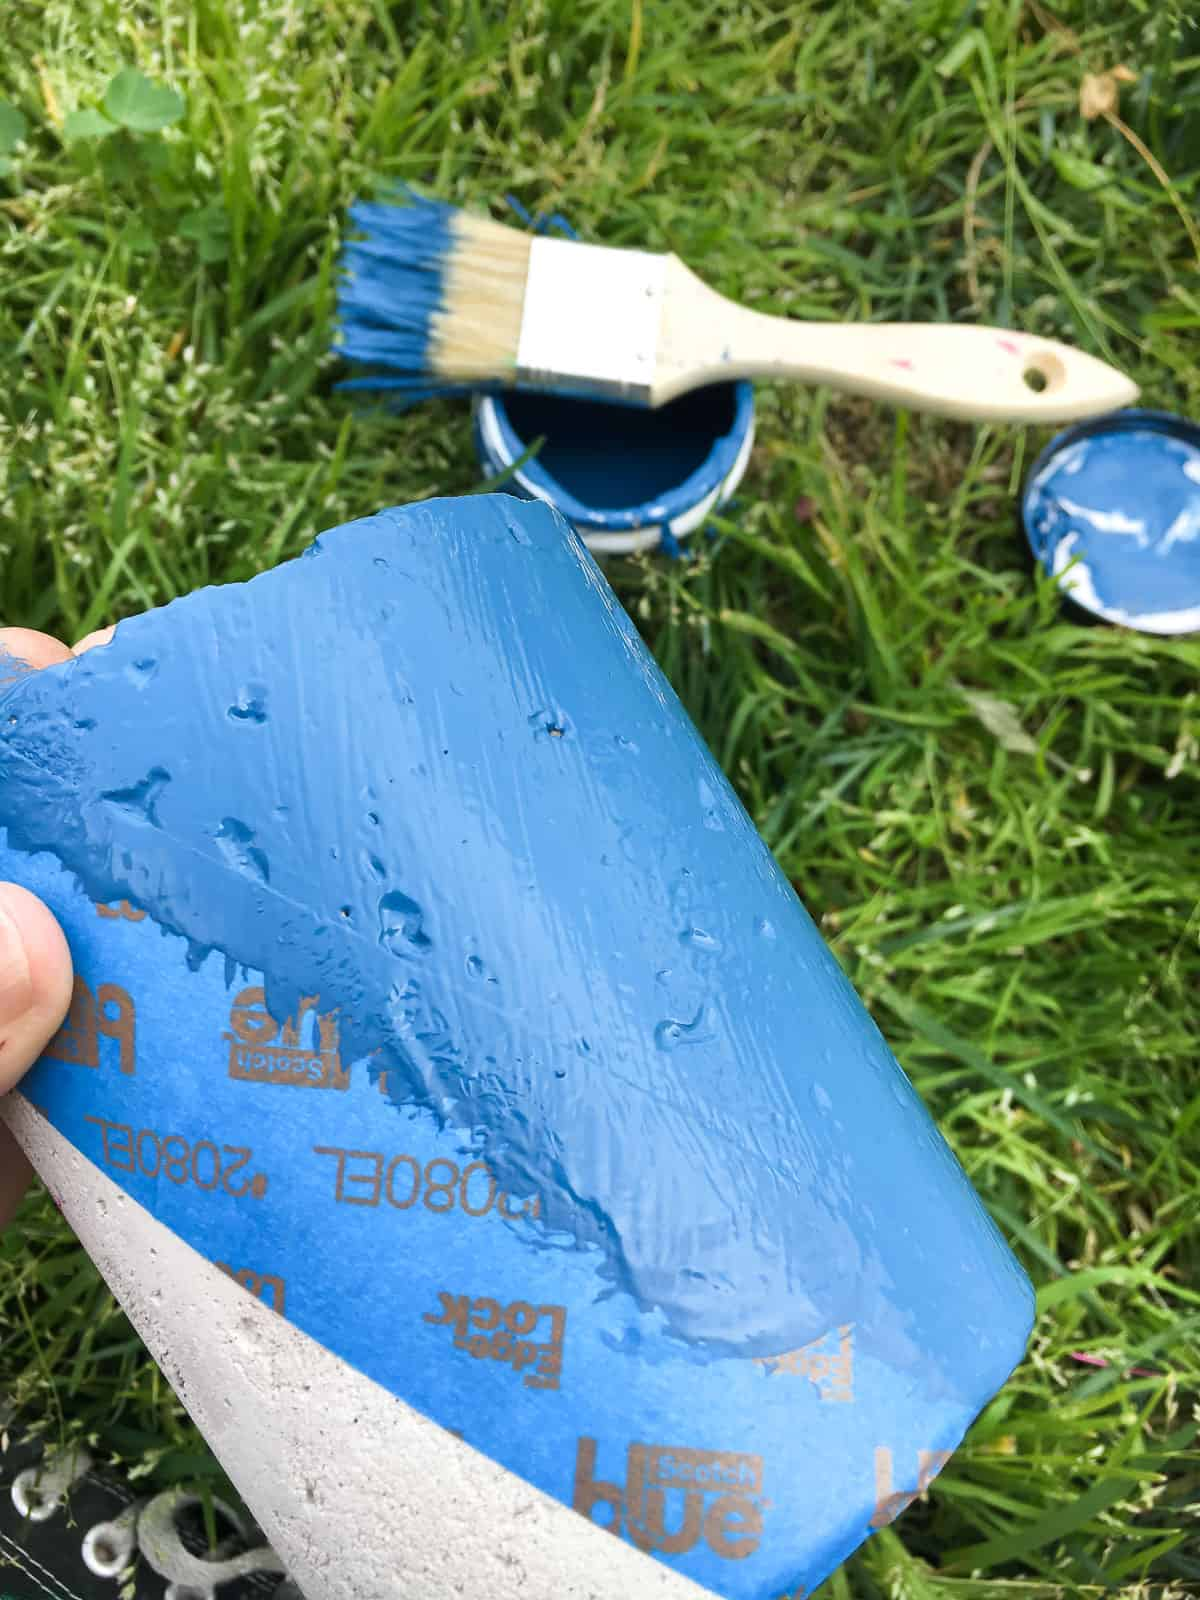 One concrete planter receives a layer of blue paint, at an angle defined by blue painter's tape